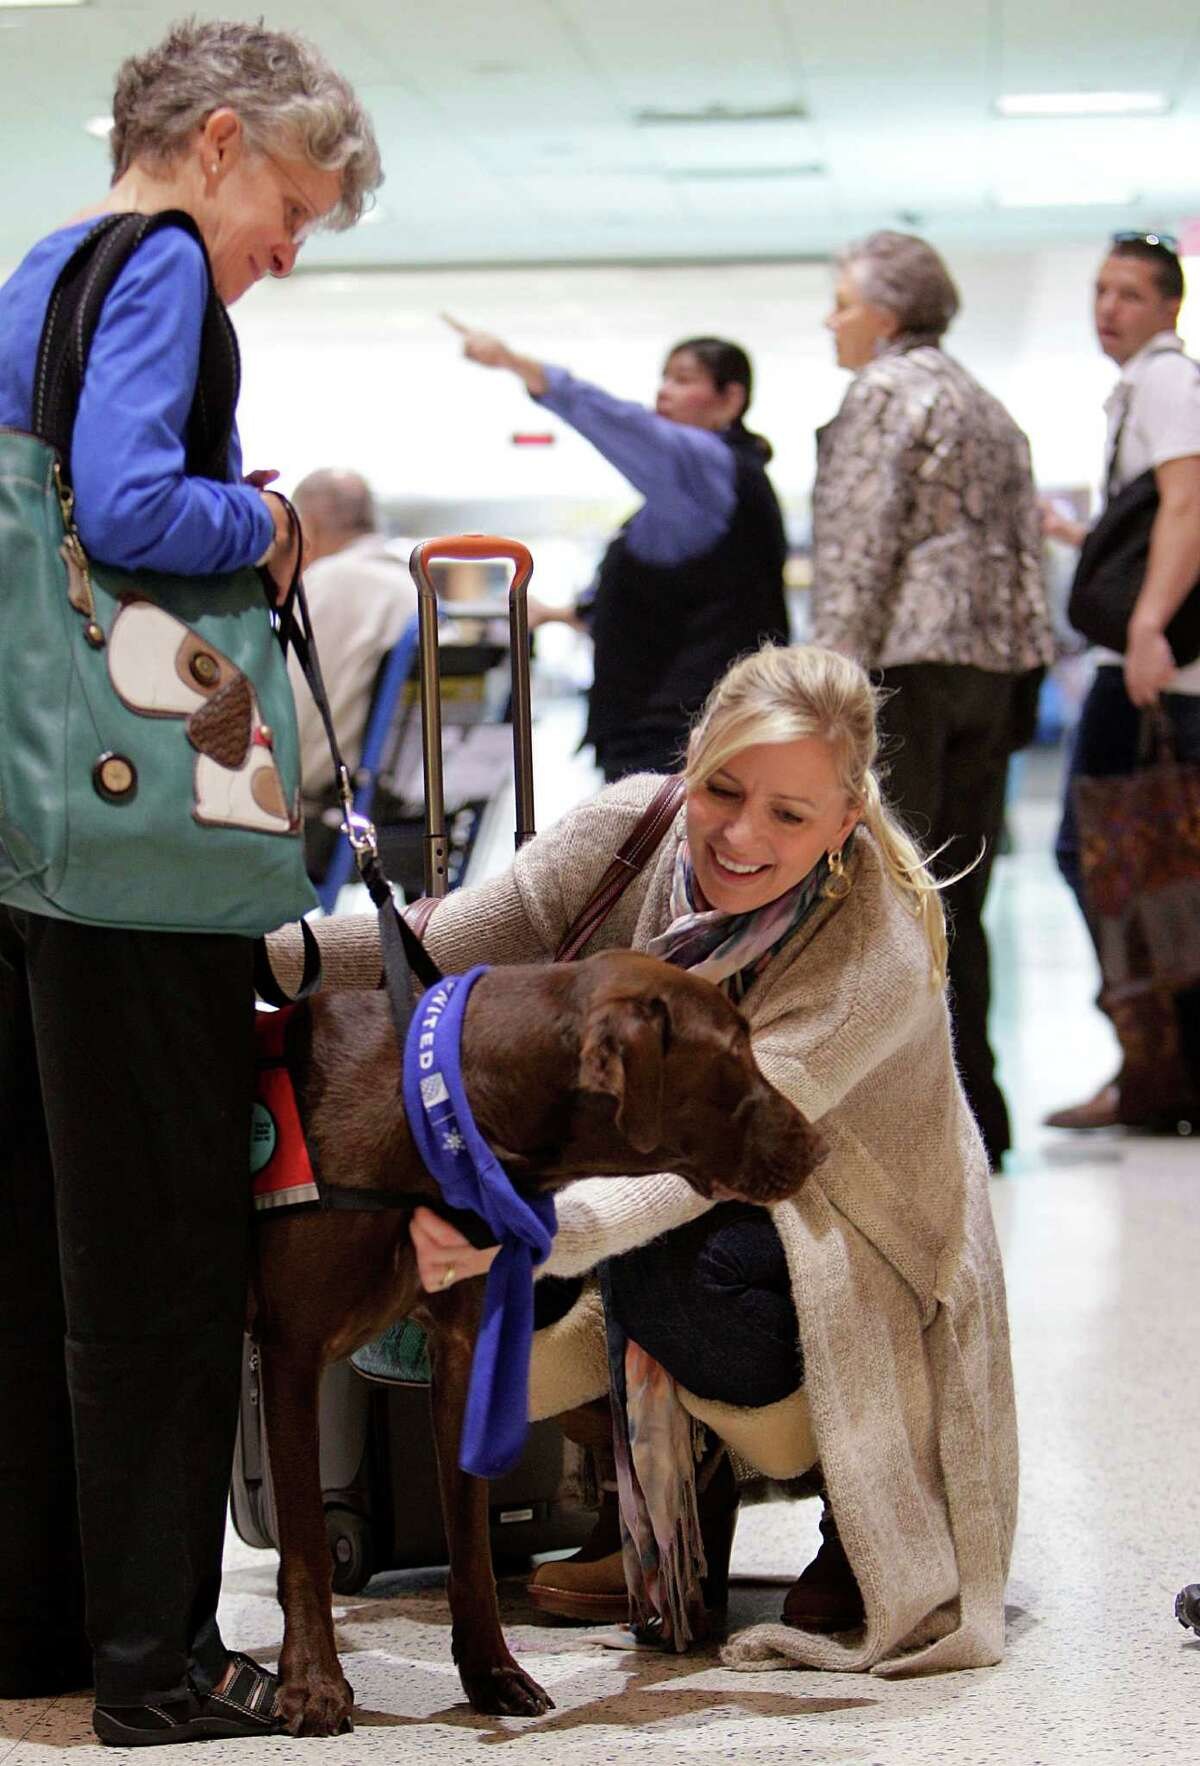 Jaci Smith pets 'Simond', a chocolate labrador, as part of United Airlines offering passengers comfort and holiday cheer with therapy dogs at Bush Intercontinental Airport on Monday, Dec. 22, 2014, in Houston.